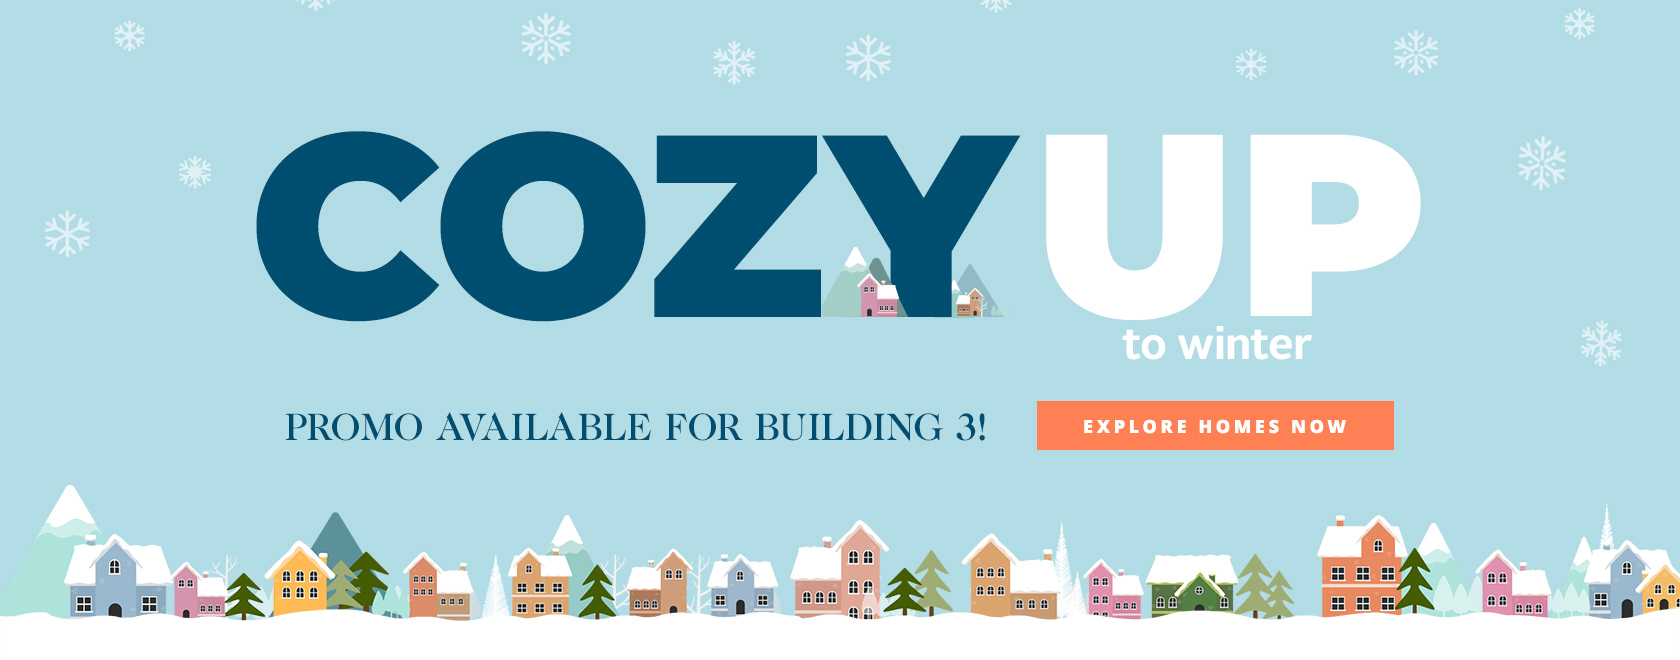 Cozy up to winter promo graphic